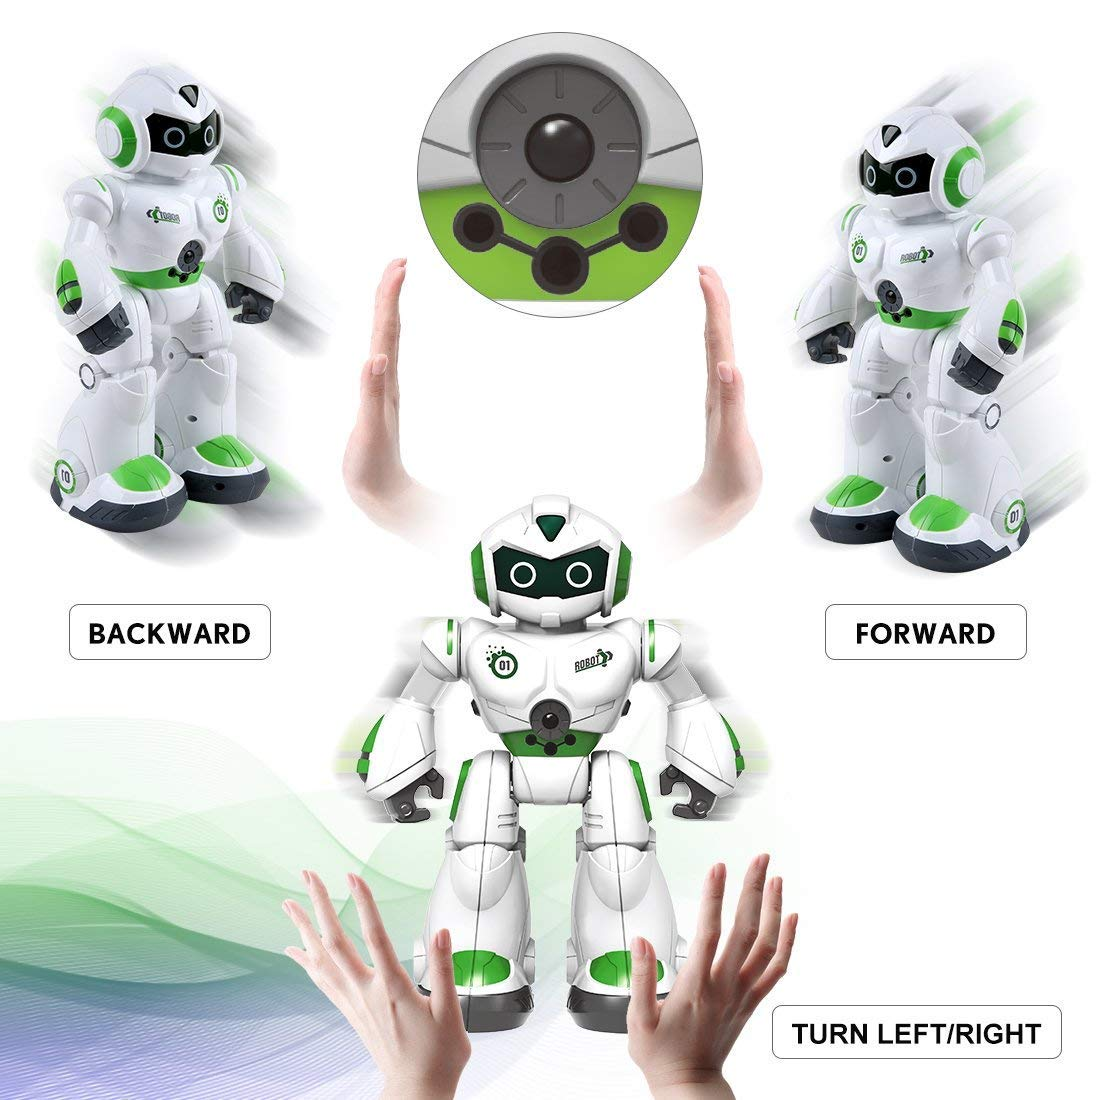 Remote Control Robot,Robot Toys,Smart Robotics for Kids with Gesture Sense, Interactive Walking Singing Dancing Speaking,with LED Light, Shoots Missiles, Talking, Walking, Singing, Educational Toys by Locke Teddy (Image #3)